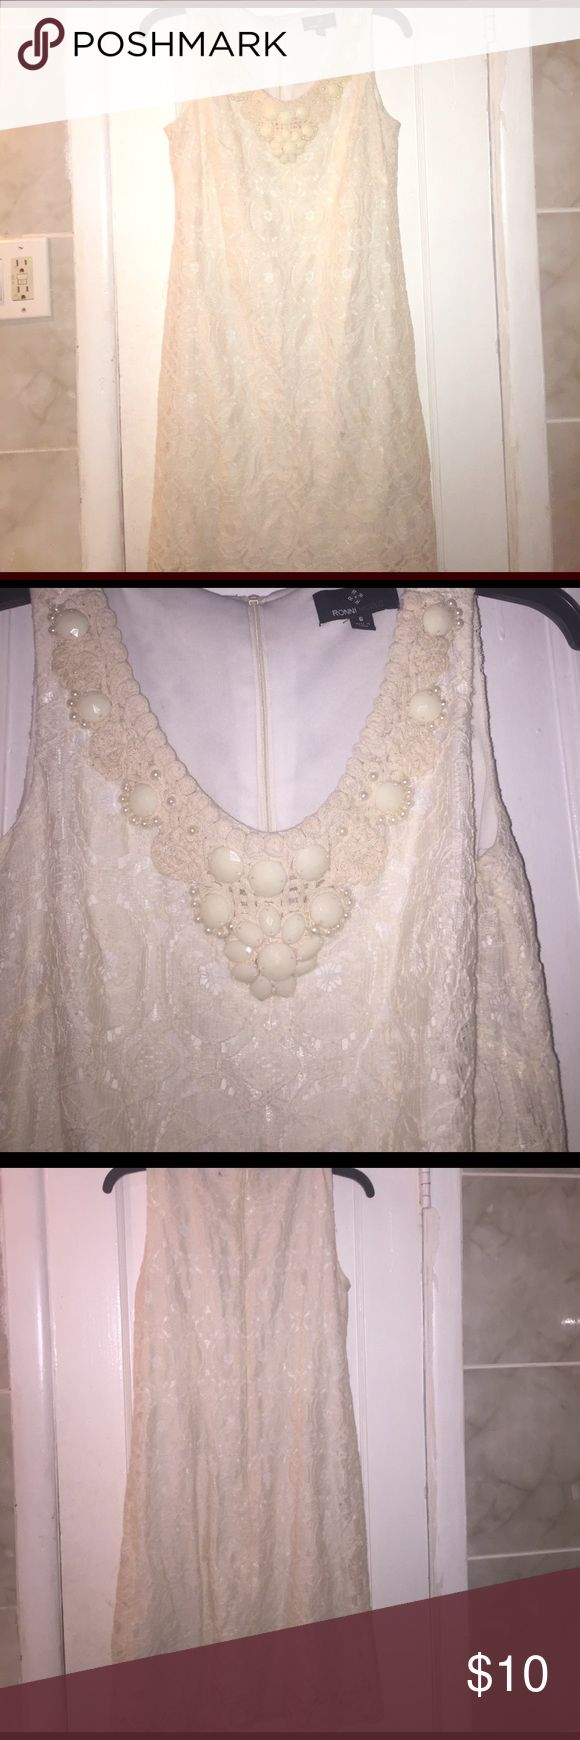 Amazing dress 👗 A fabulous cream colored Ronni Nicole dress perfect for a night out on the town❗️ A laced V-Neck mini dress. This was never worn. Dresses Mini